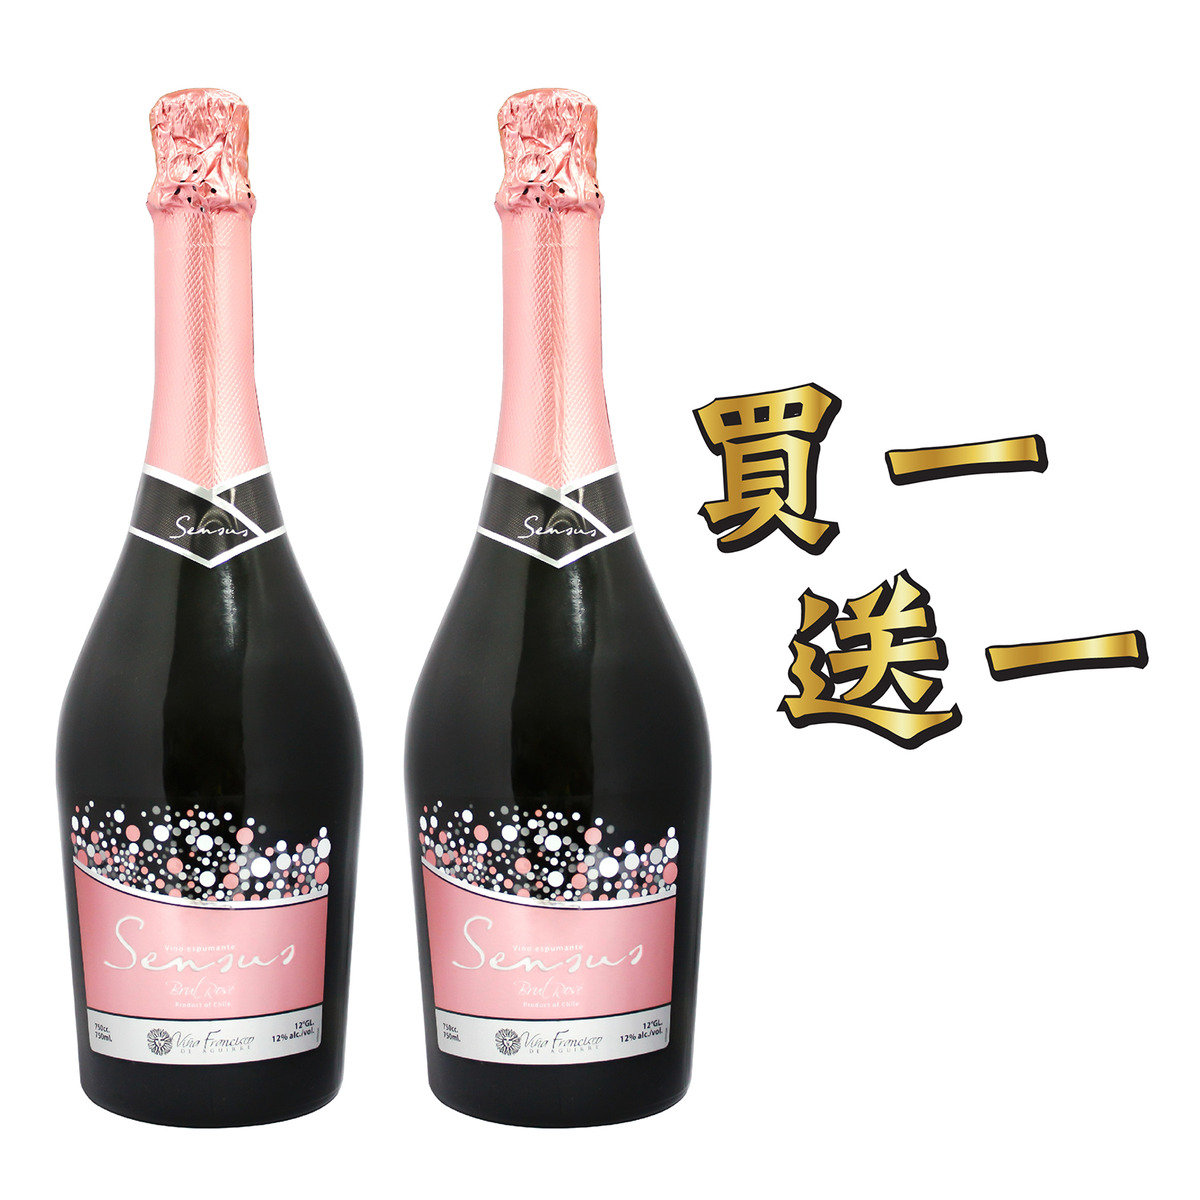 [買1送1!] Sensus Sparkling Brut Rose 750ml